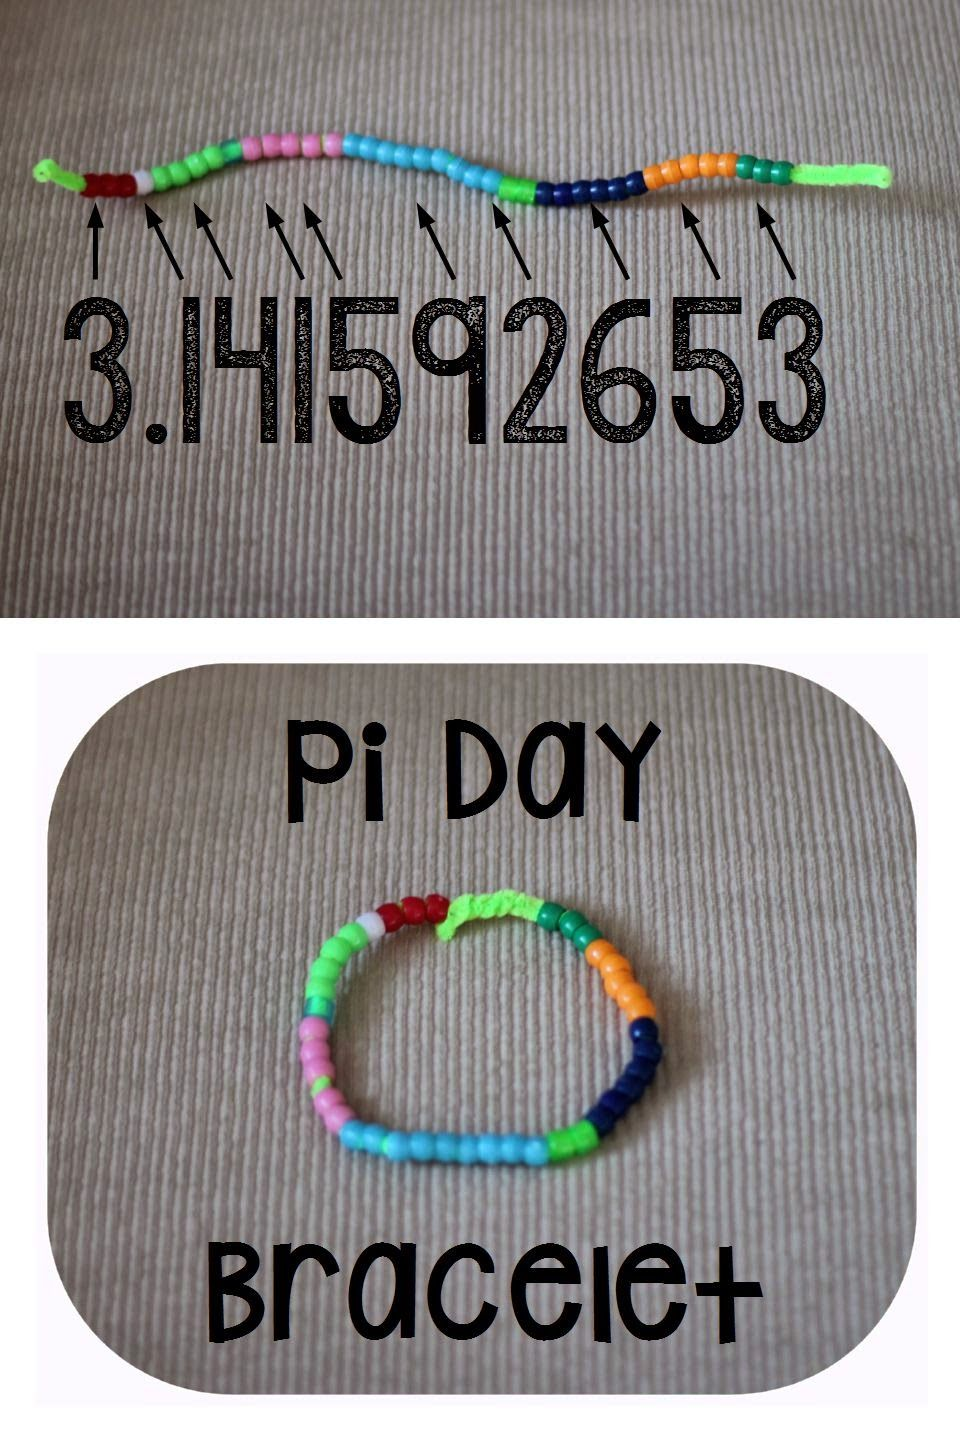 200 best pi day images on pinterest in 2018 | school, math classroom